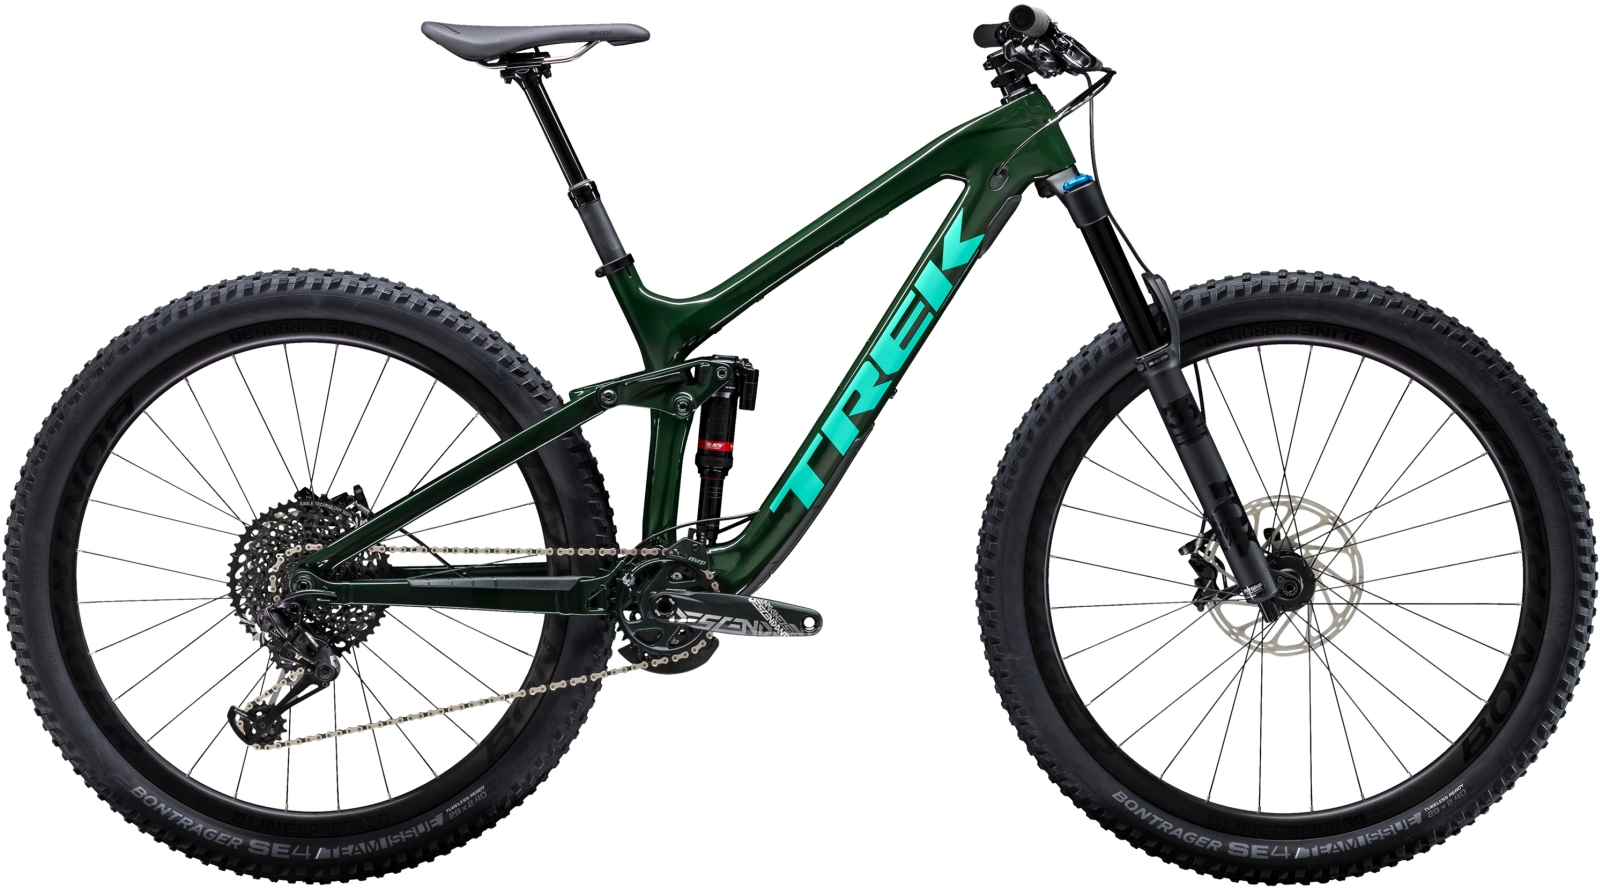 437bb24e49 Trek Slash 9.8 - British Racing Green 15.5